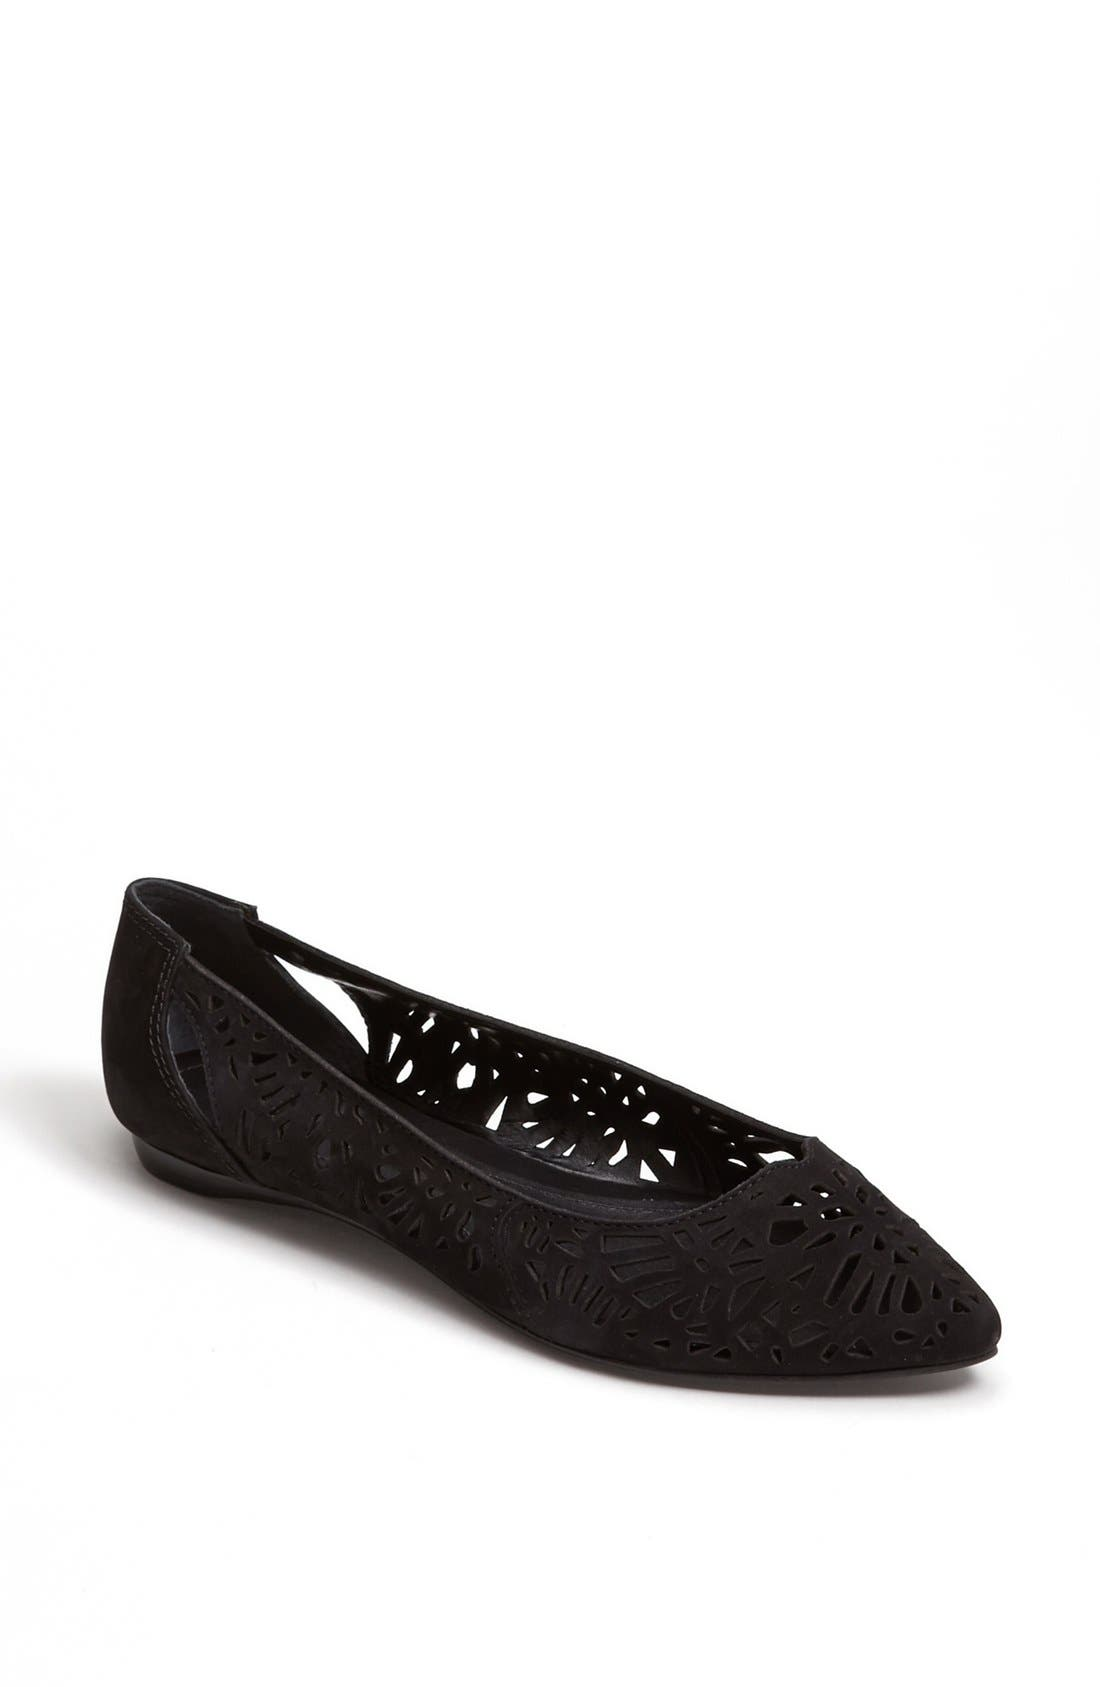 Alternate Image 1 Selected - Schutz 'Cicely' Perforated Flat